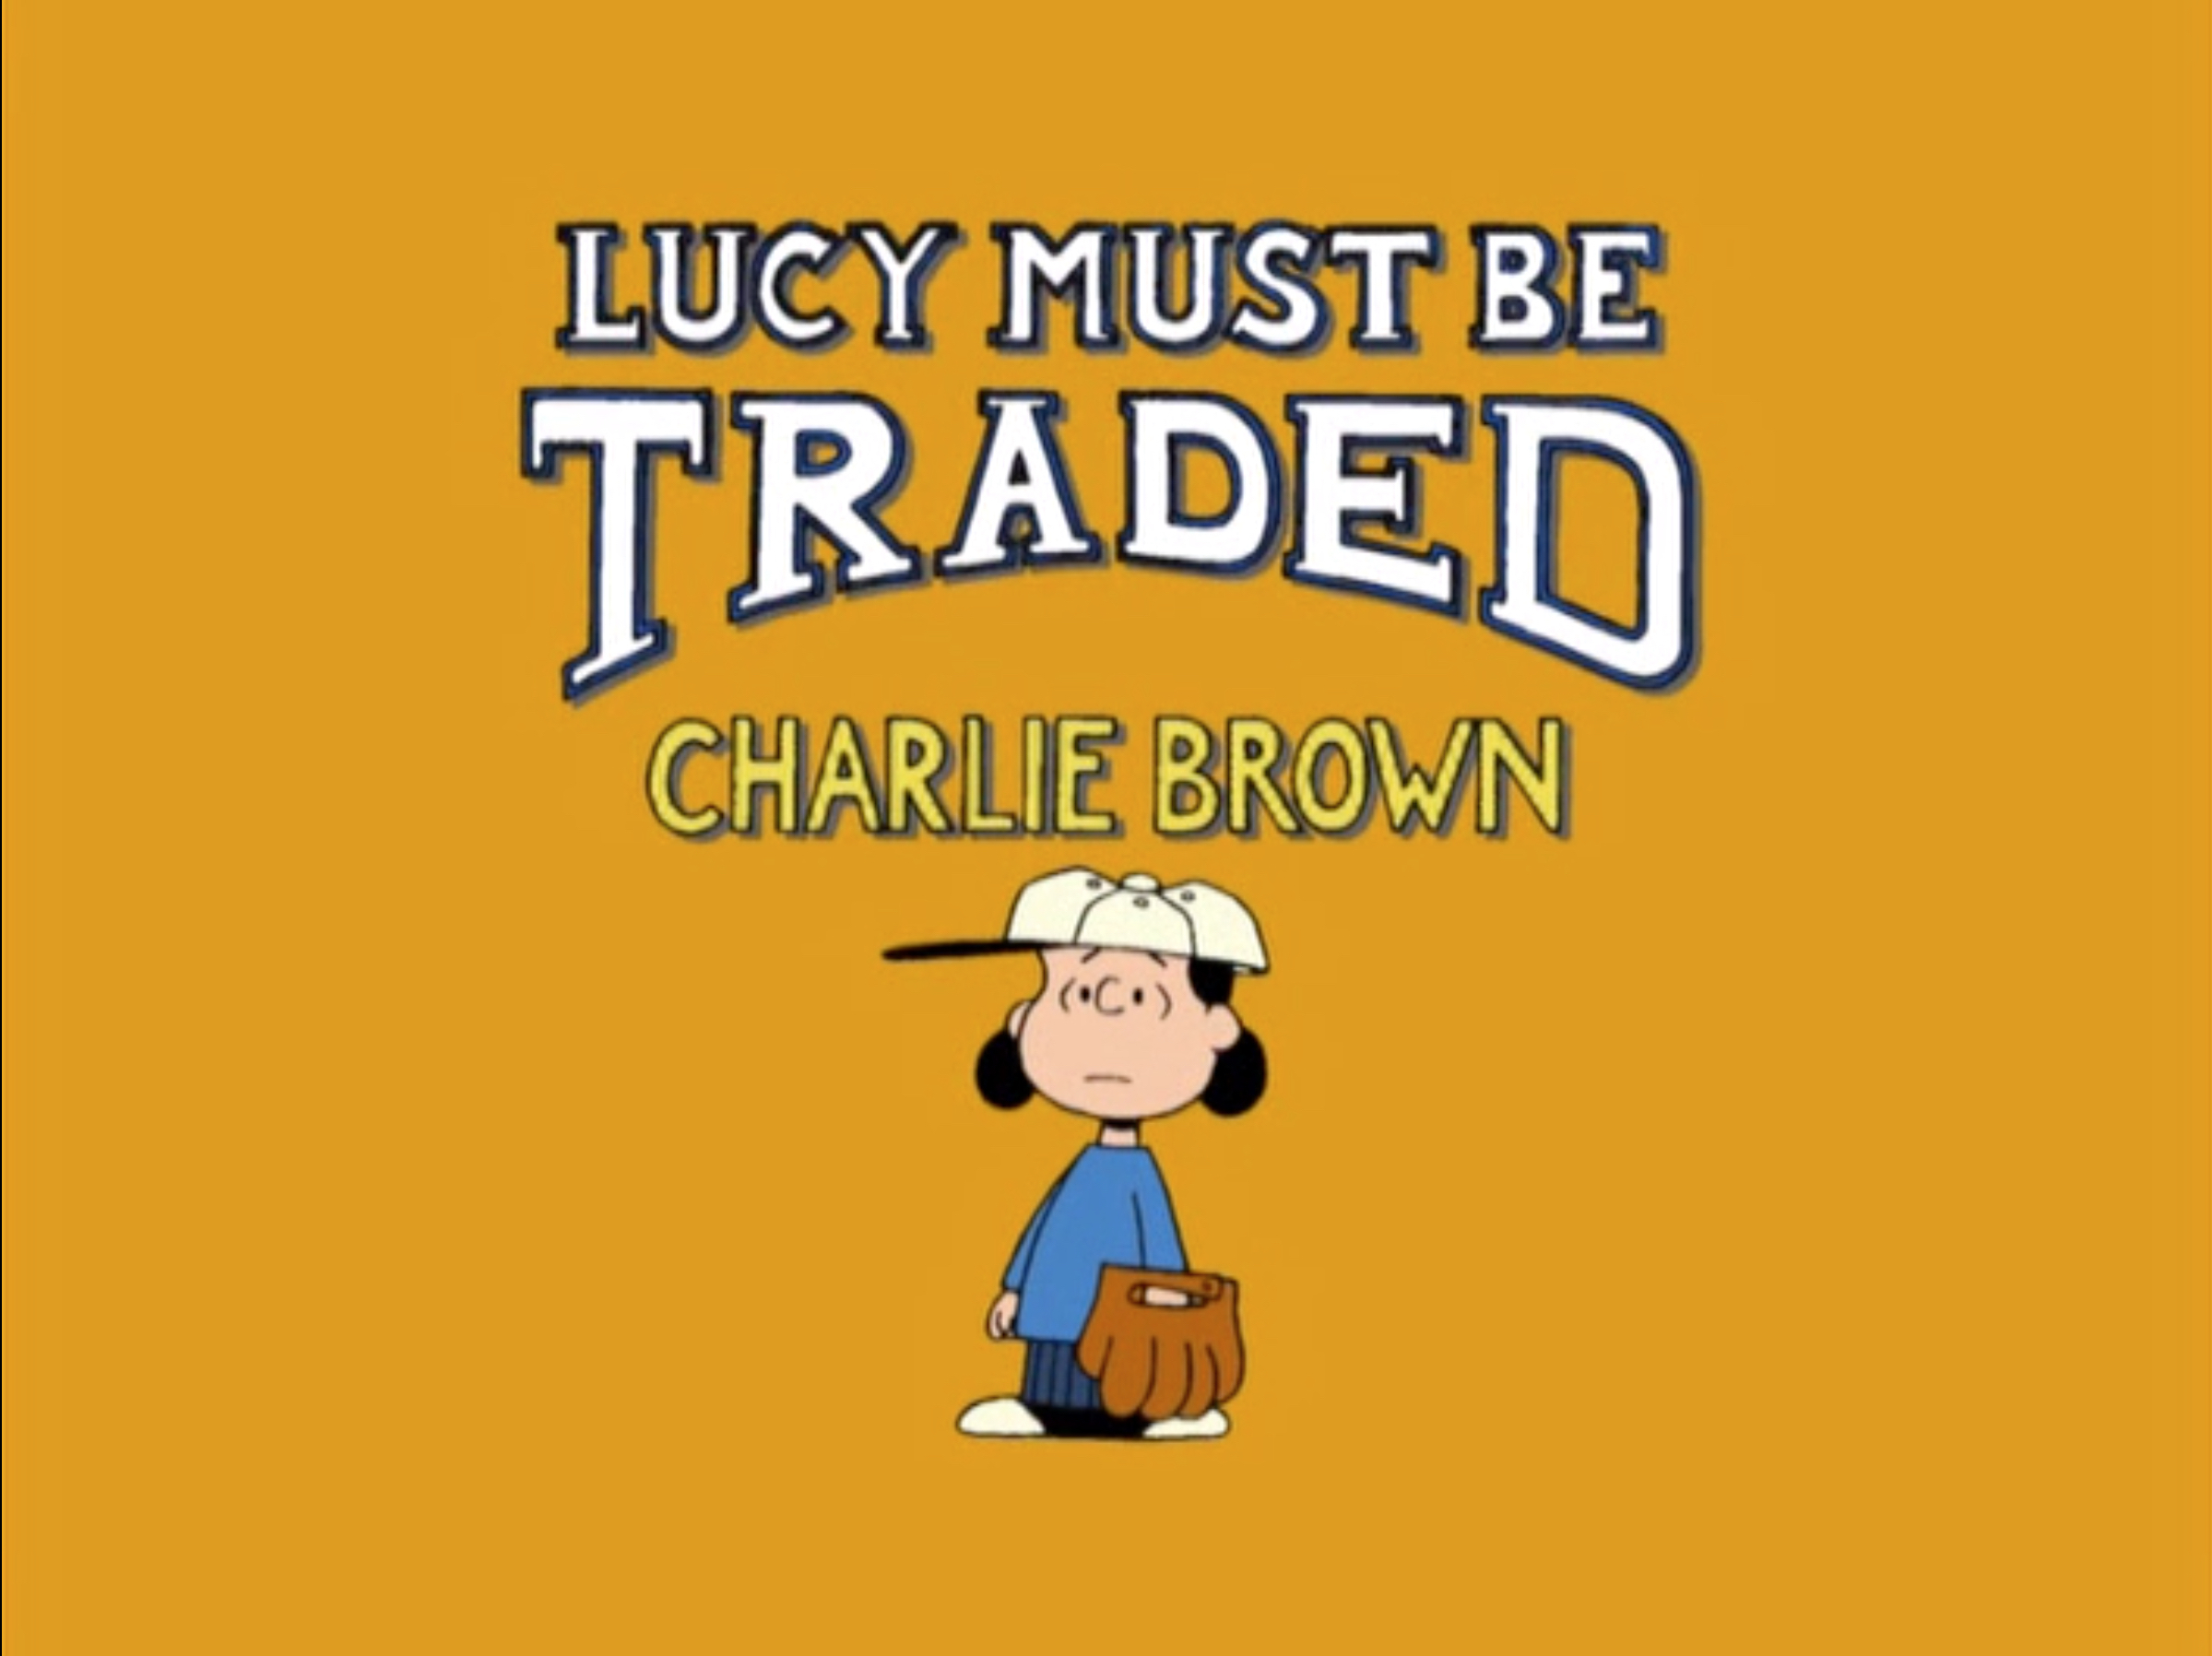 File:Title-LucyMustBeTraded.jpg